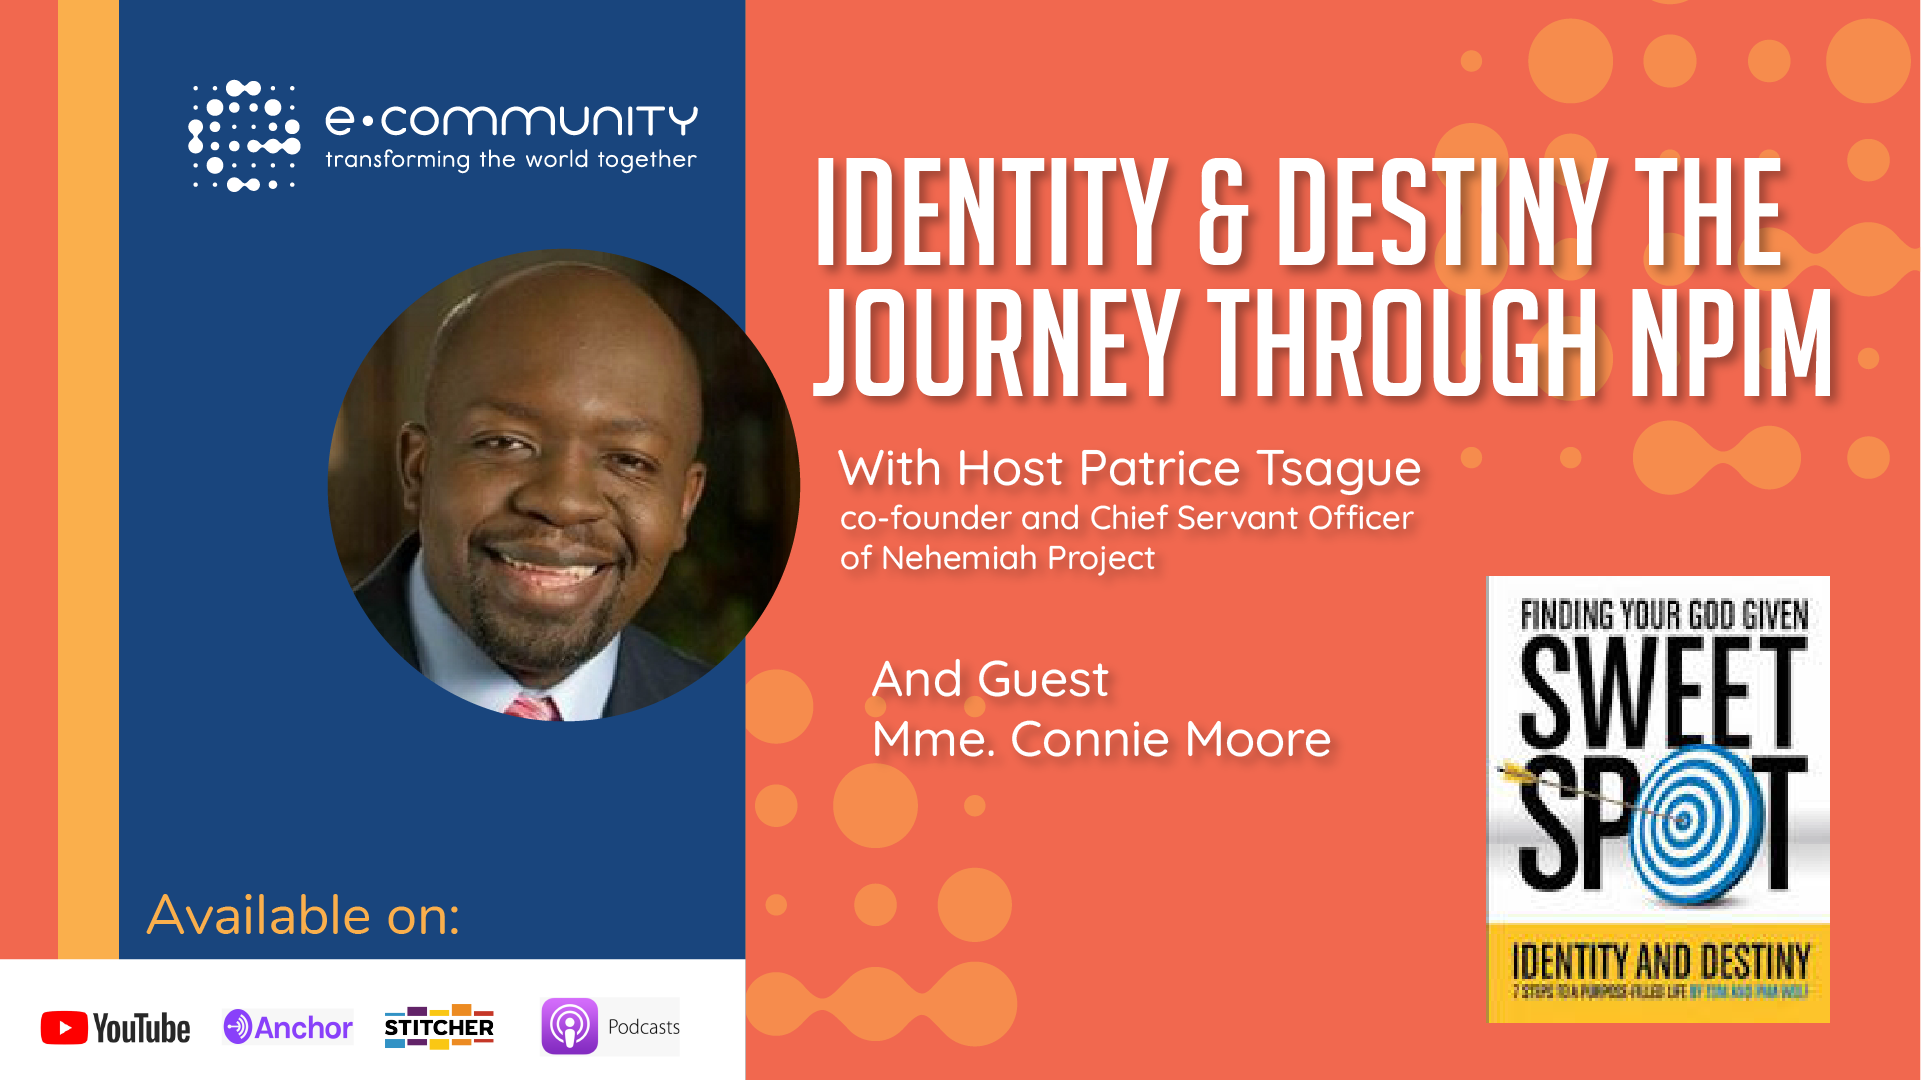 Identity & Destiny the Journey through NPIM